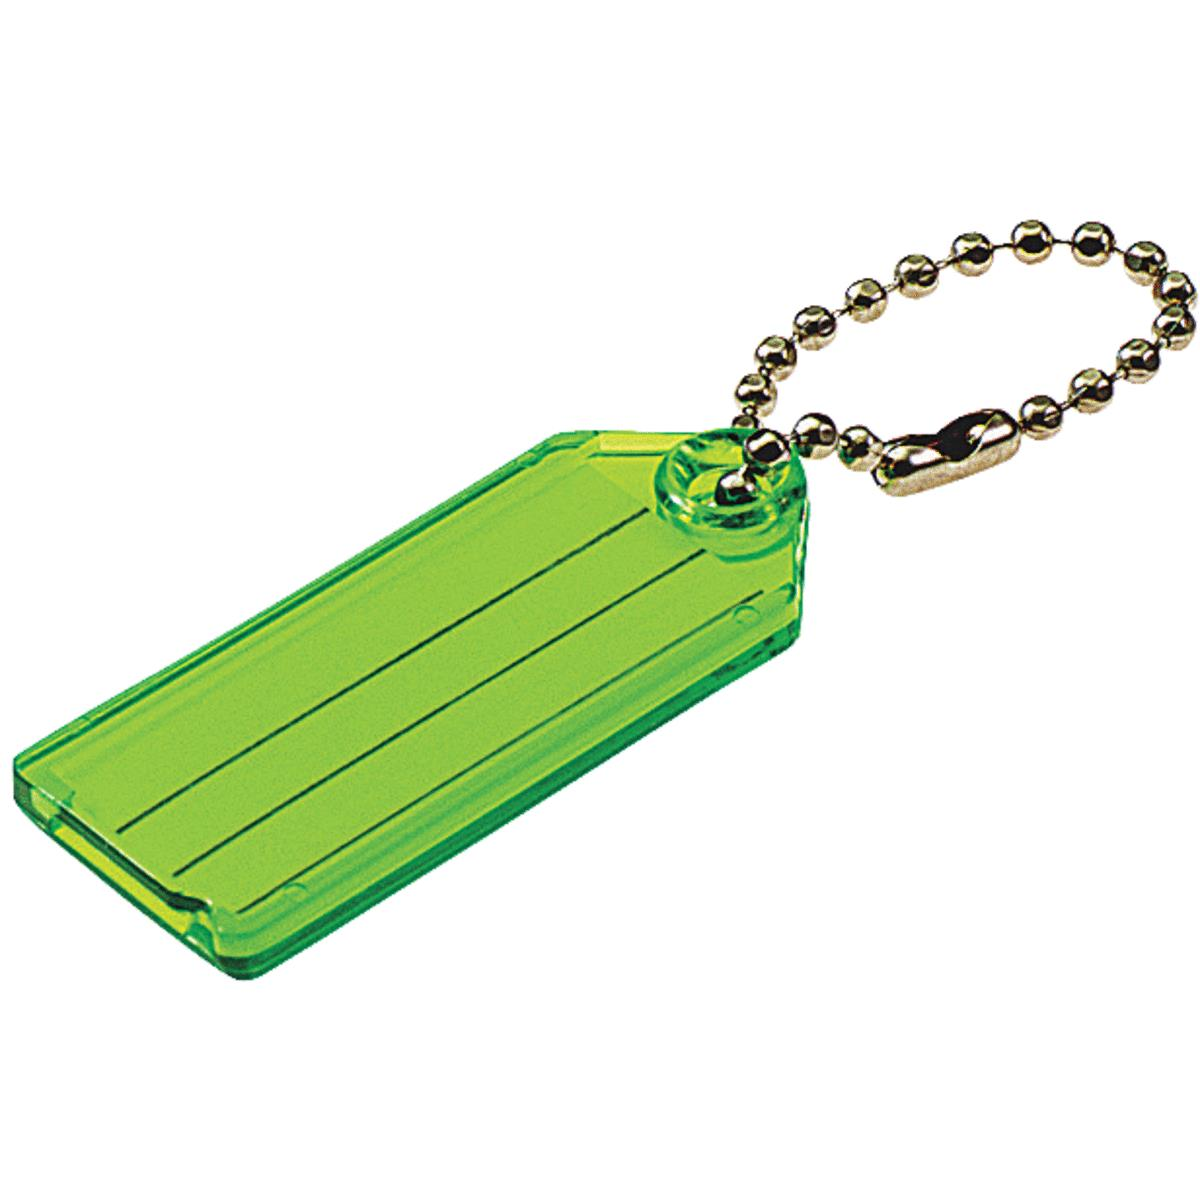 I.D. Key Tag With Chain